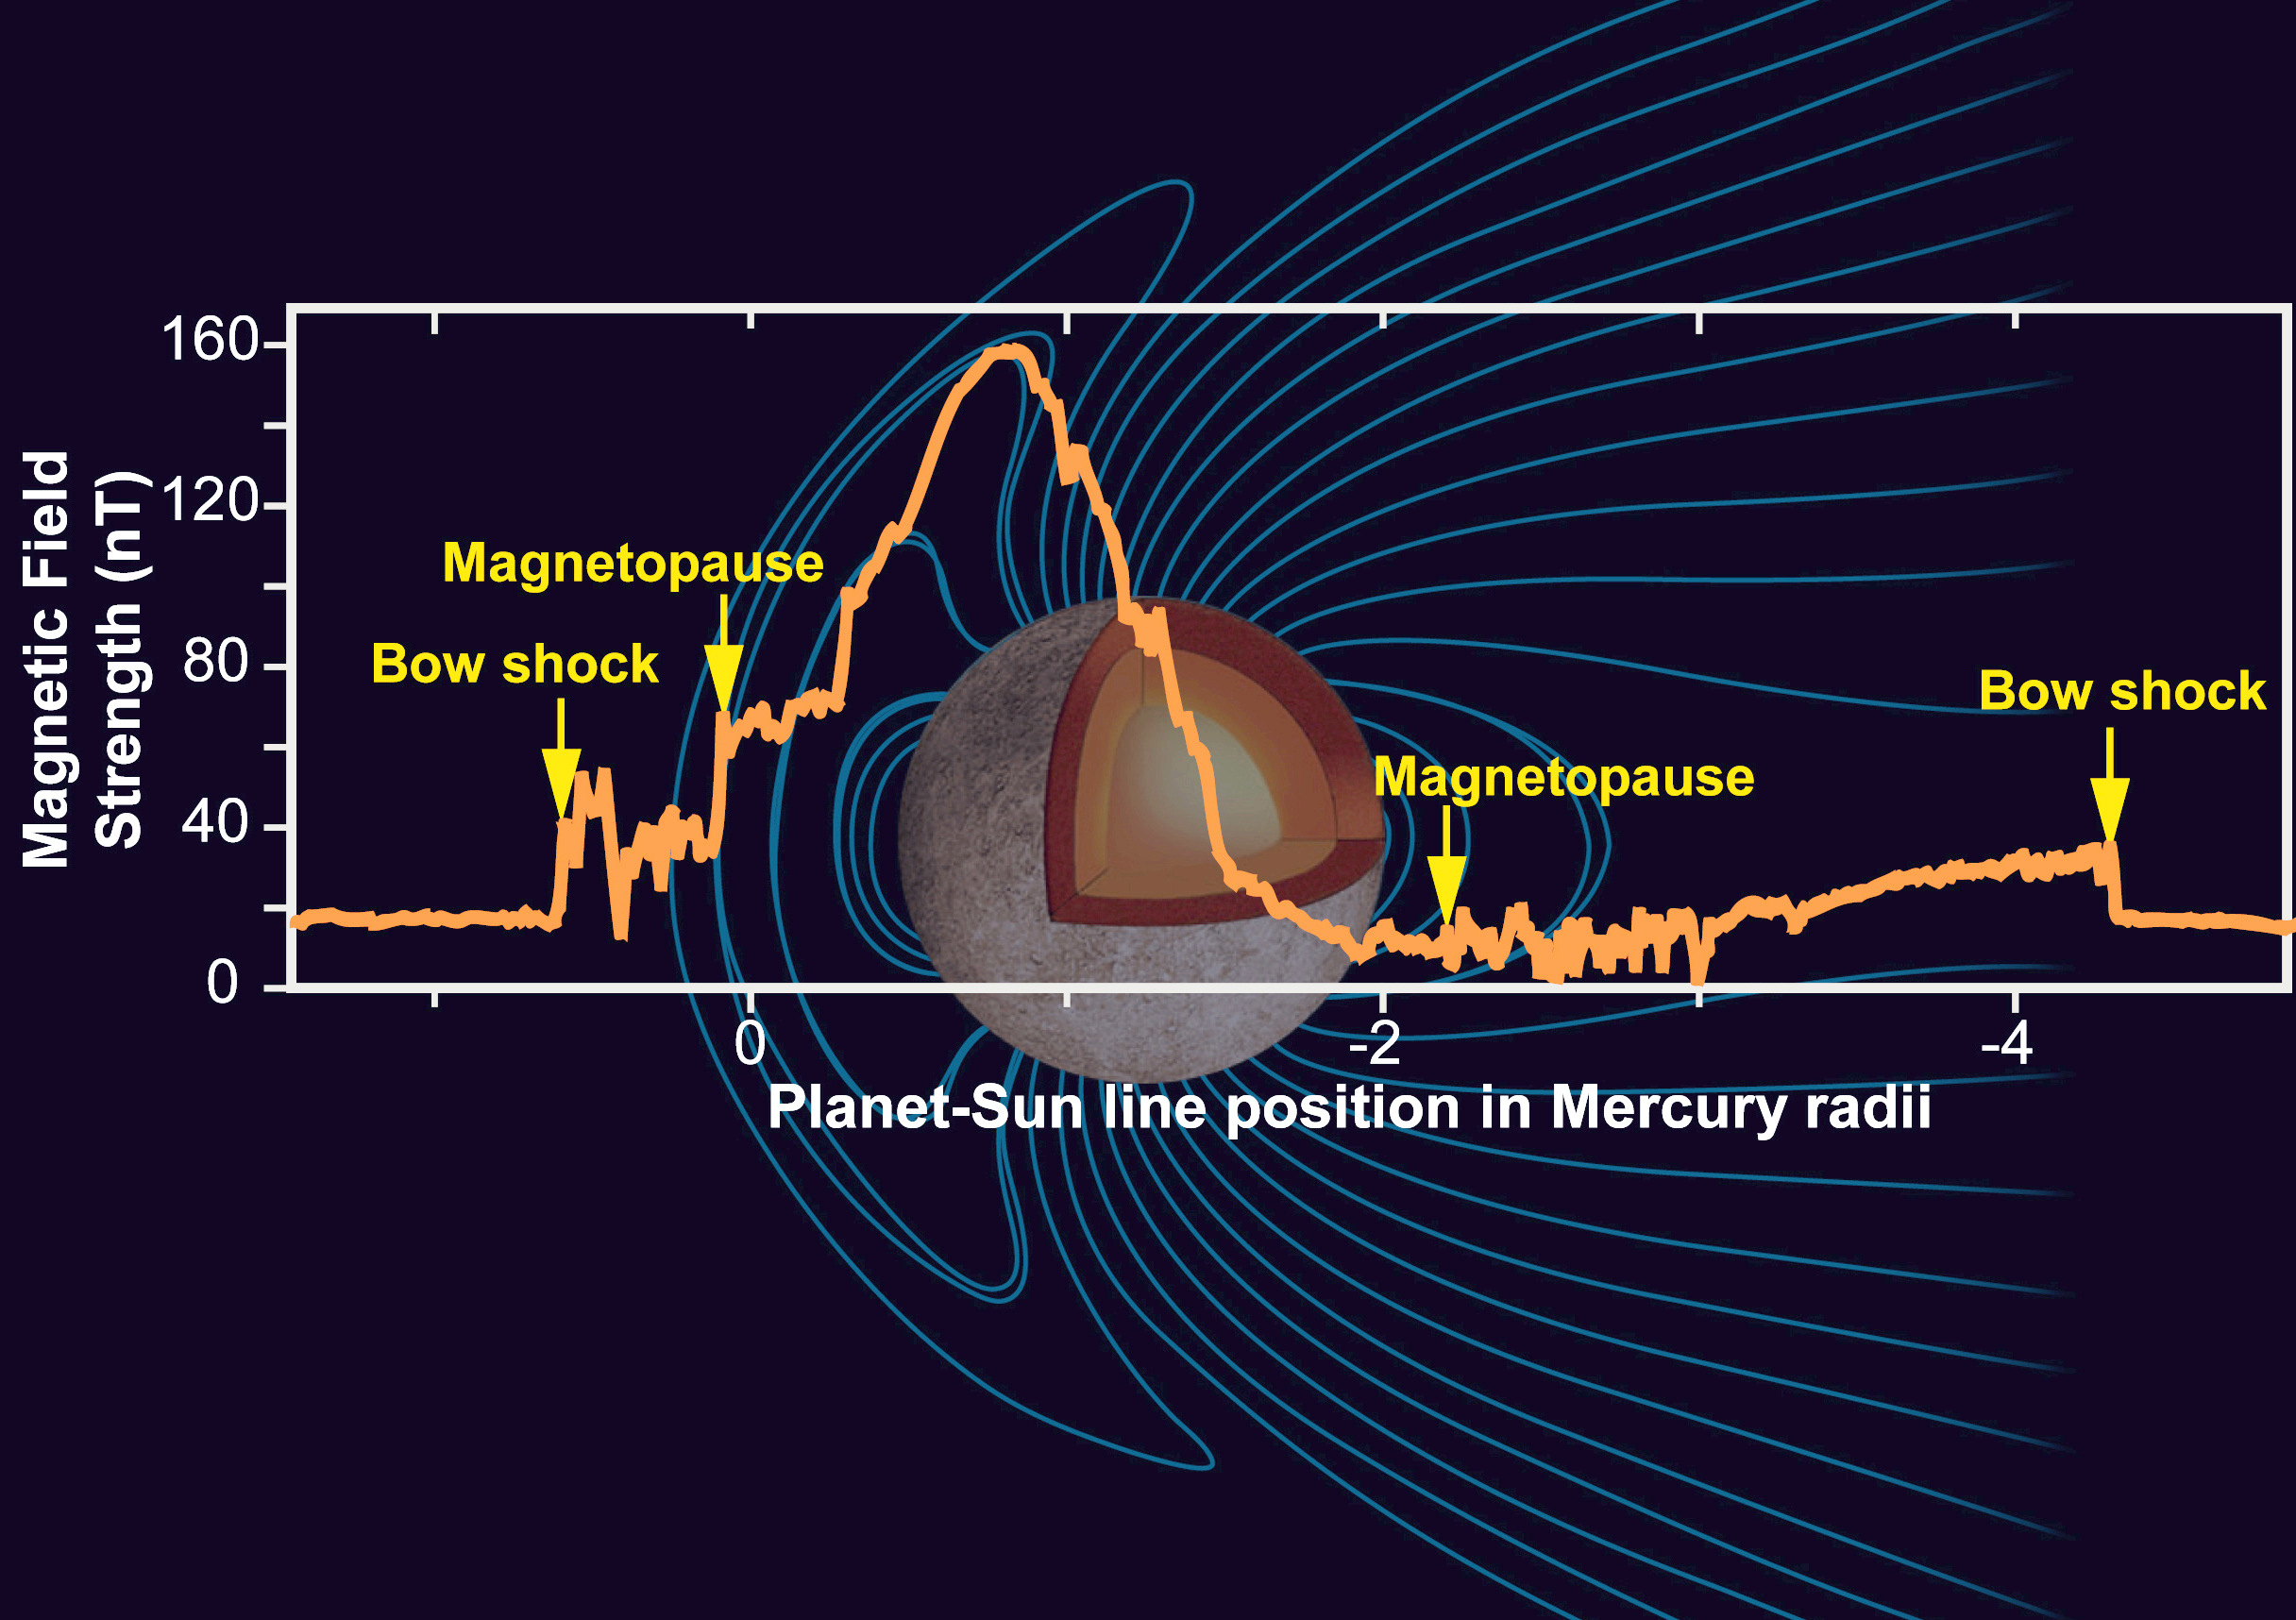 Mercurys Magnetic Field Wikipedia Solar Wind Diagram Widows To The Universe Image Sun Images